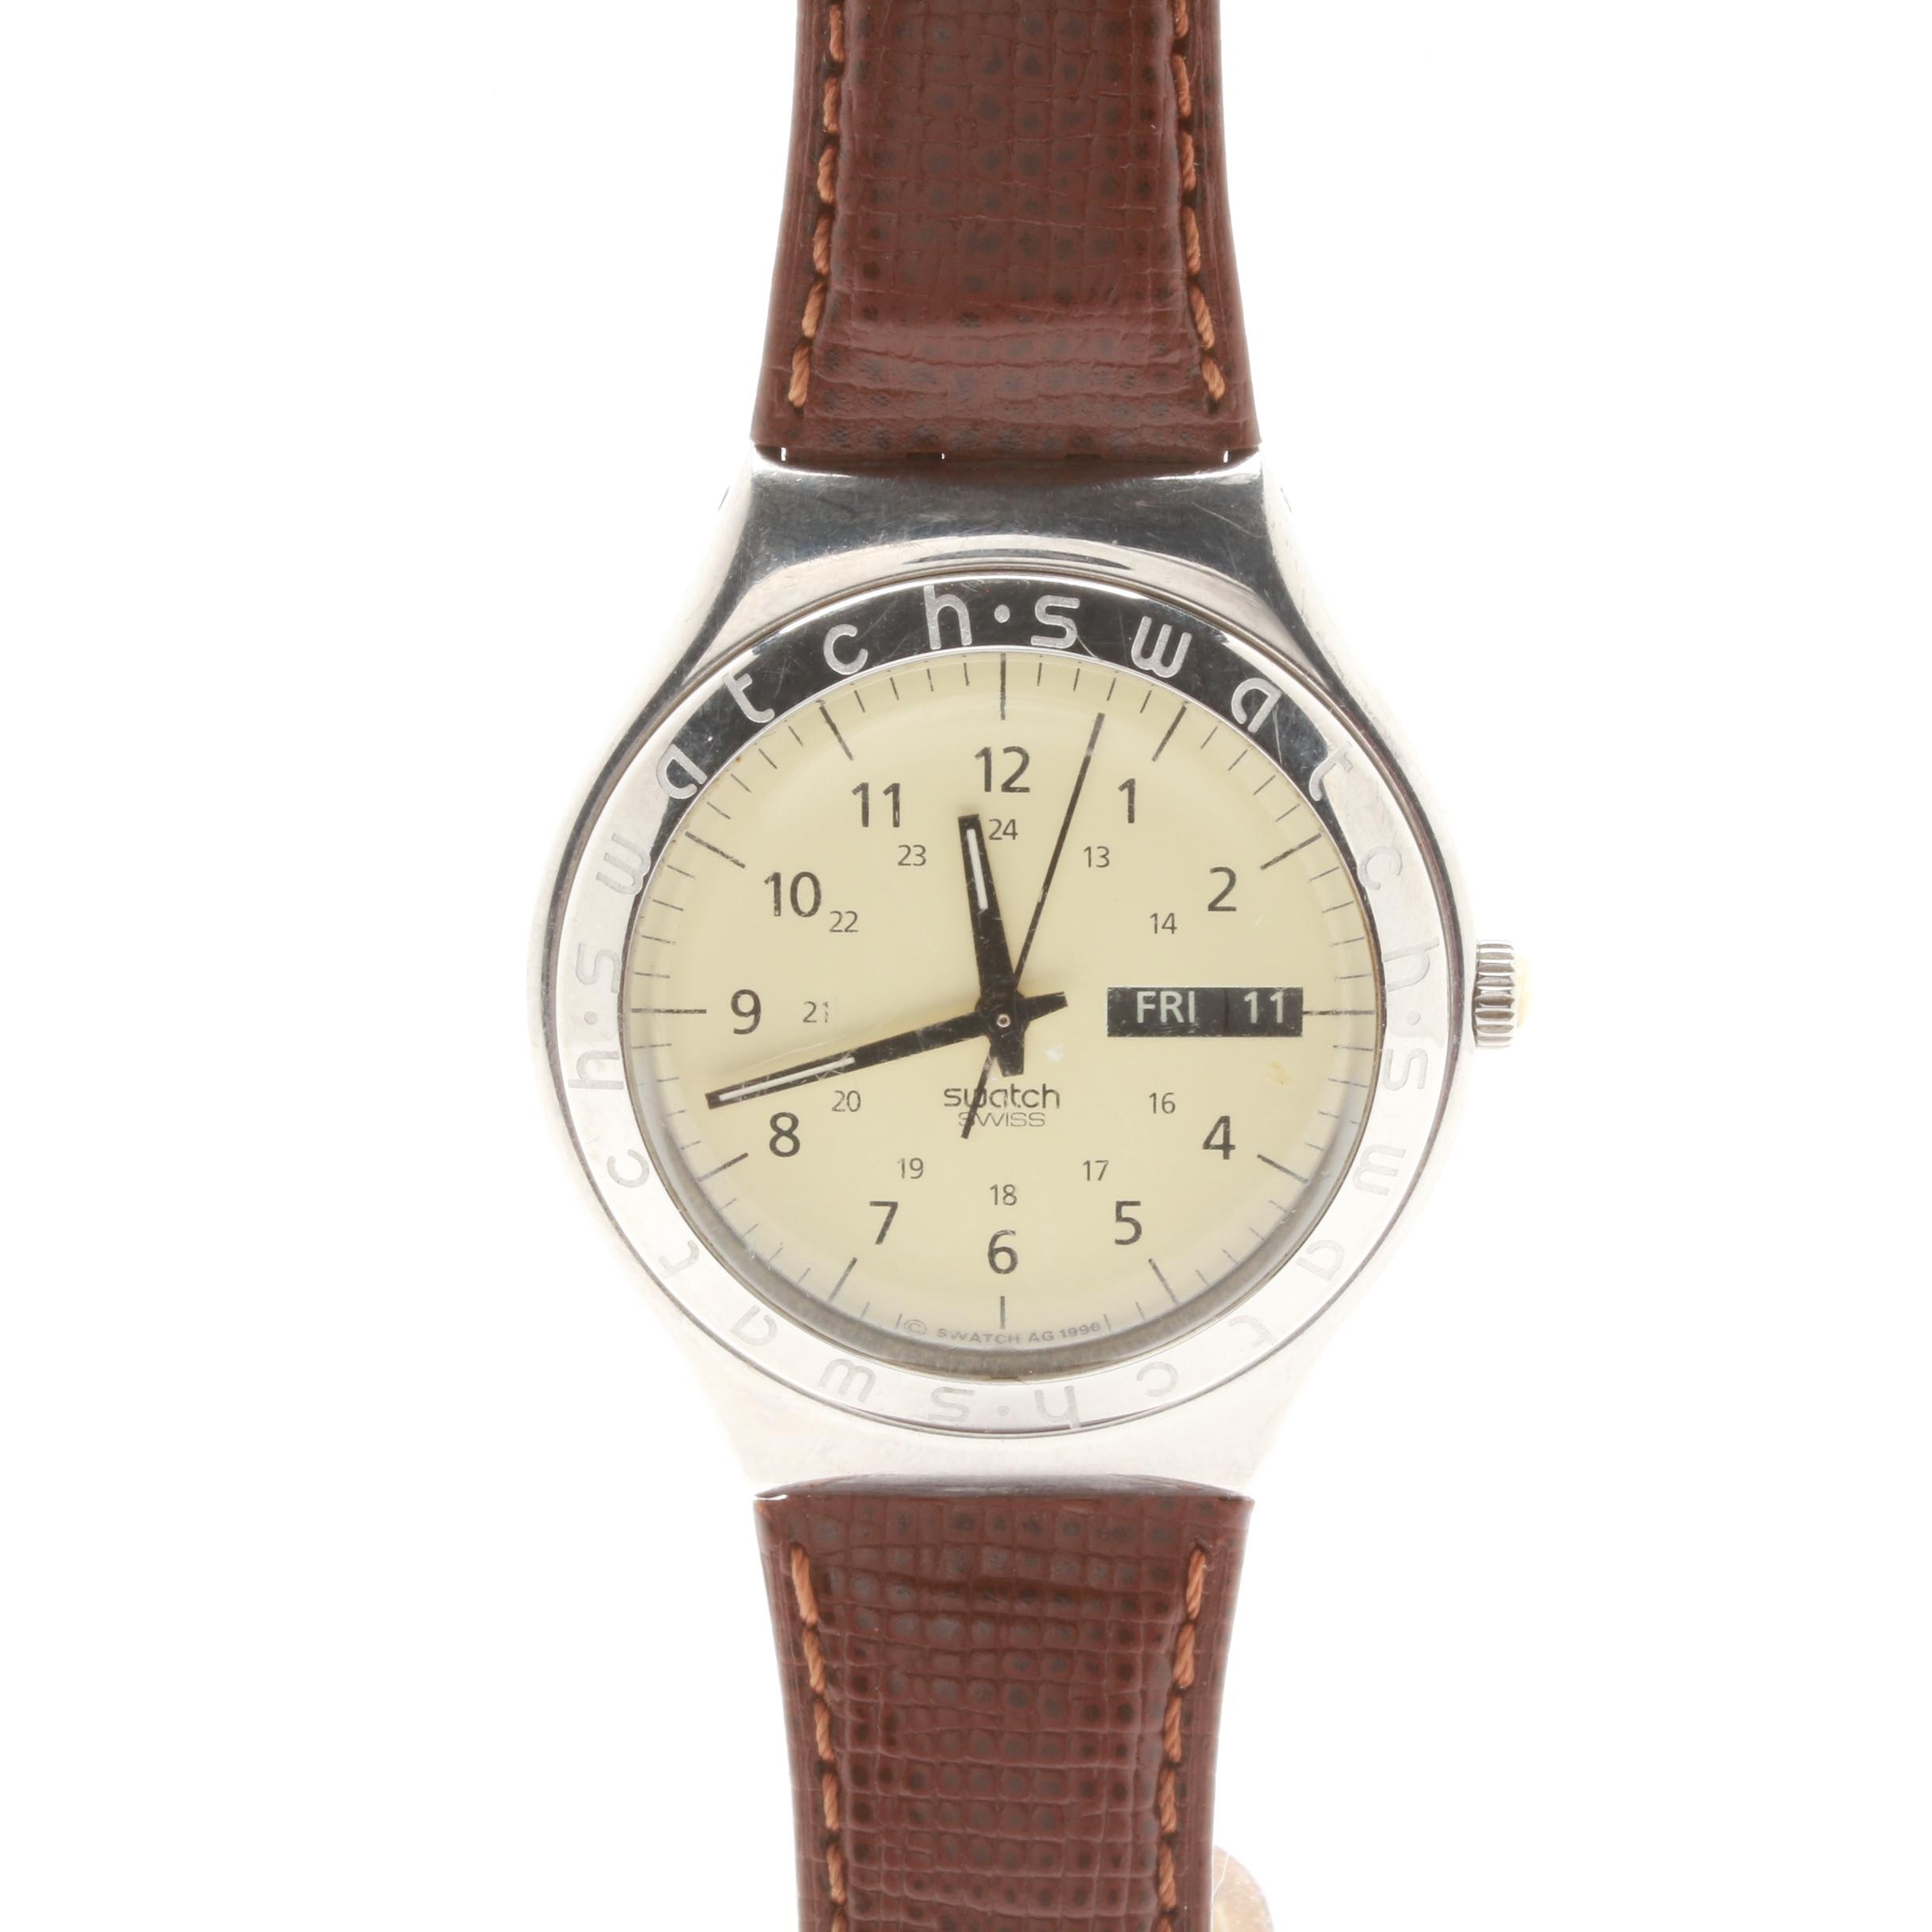 Swatch Stainless Steel Wristwatch With Leather Strap